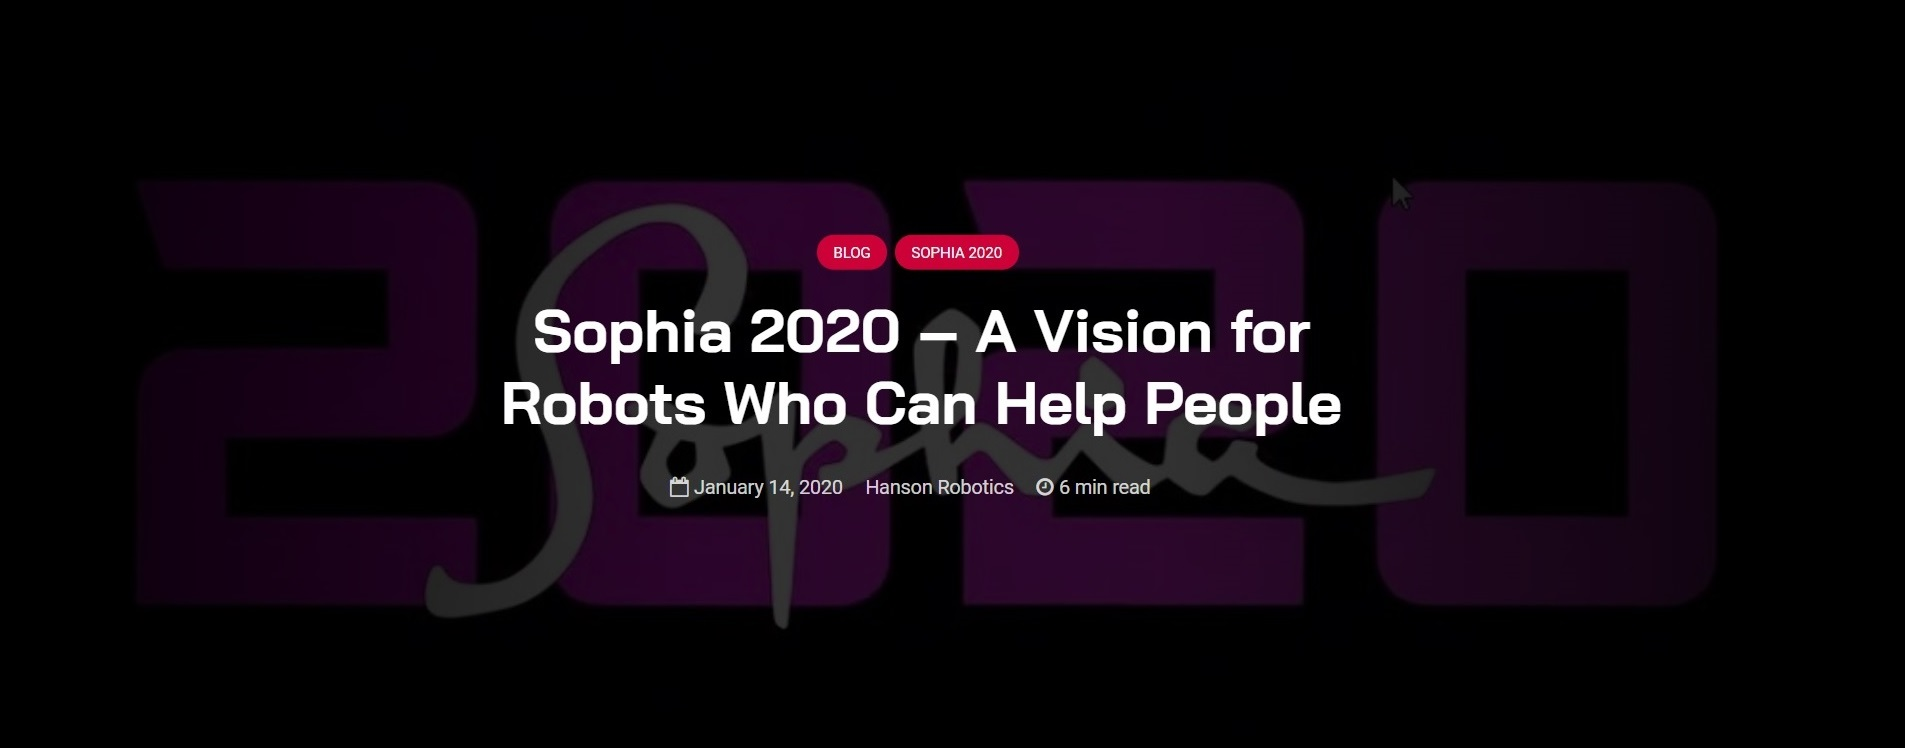 Sophia 2020 - A Vision for Robots Who Can Help People